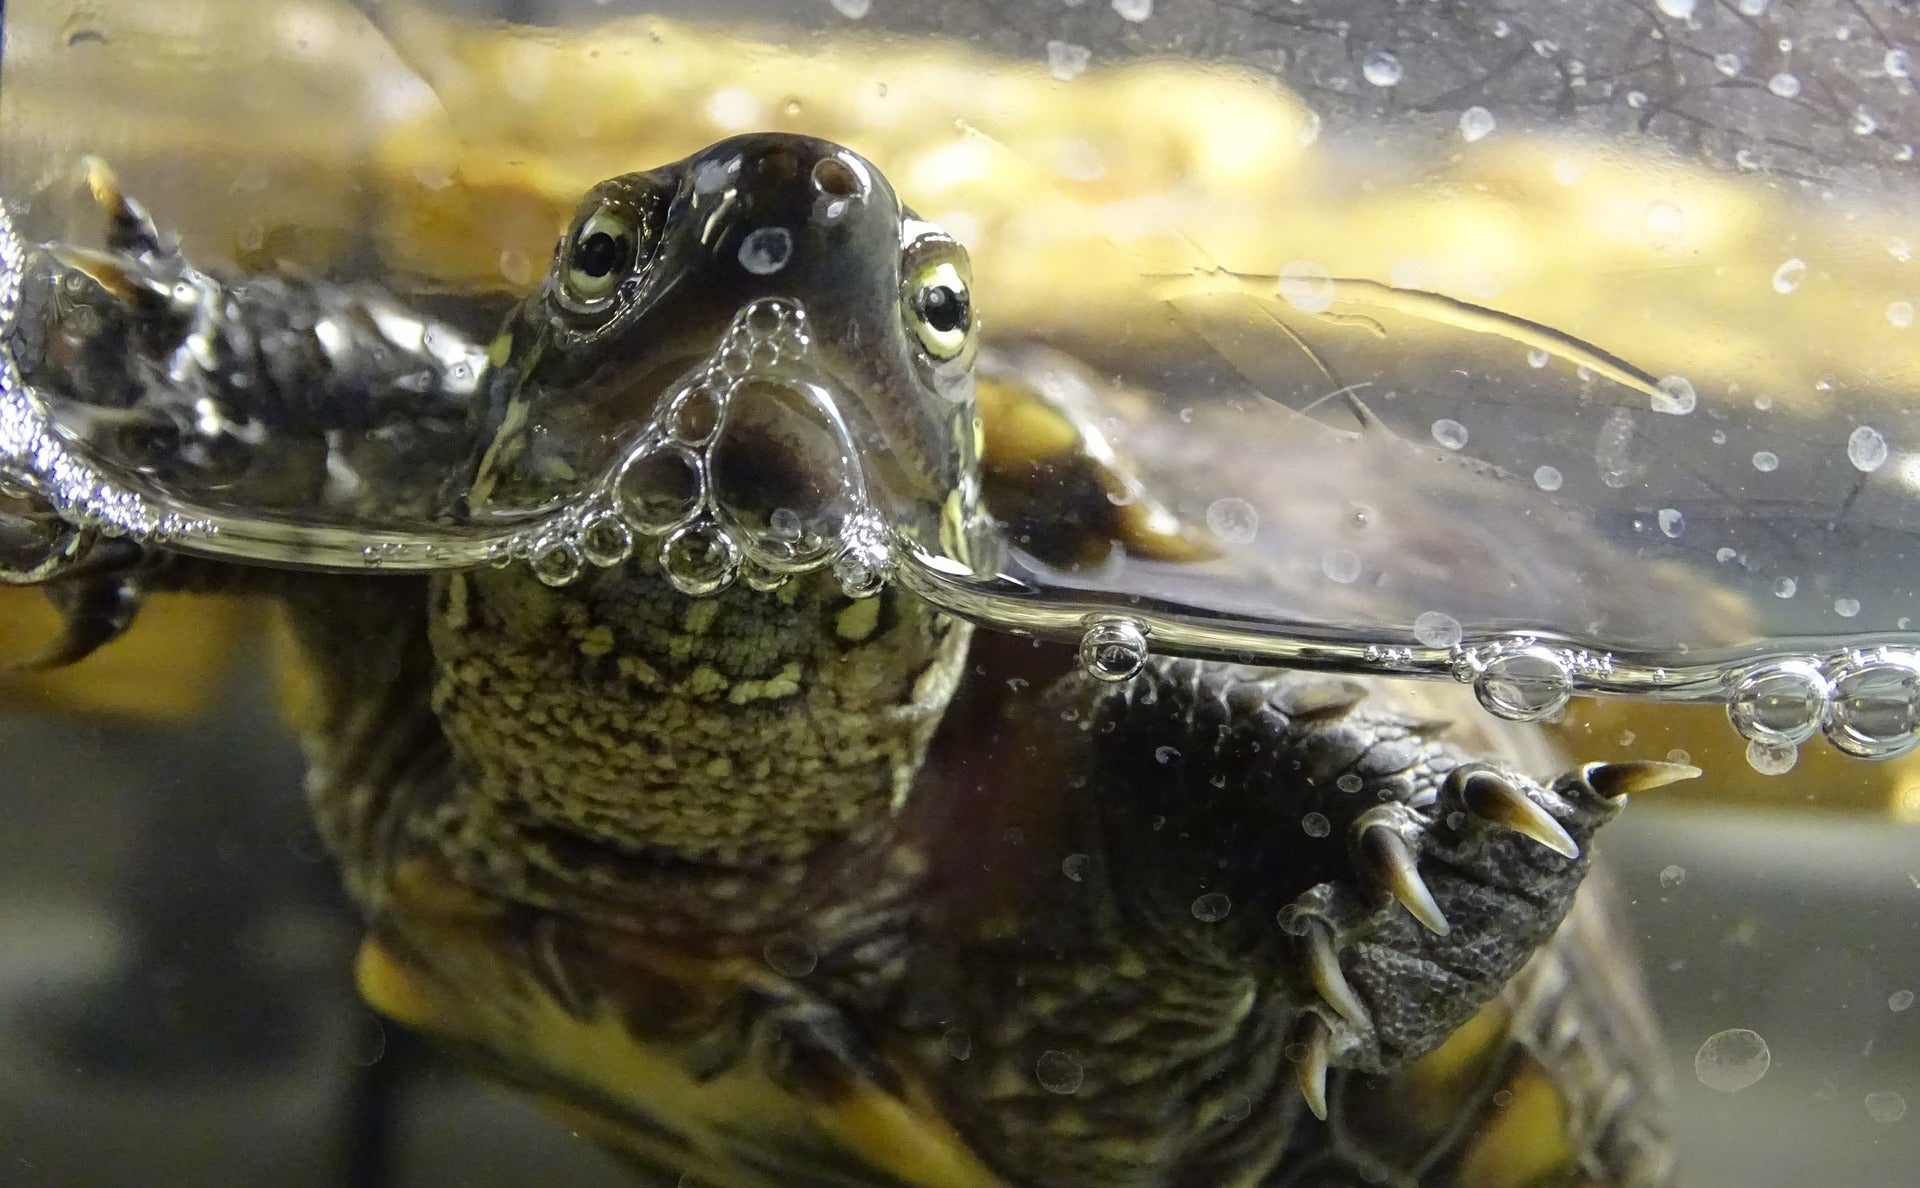 Why A Turtle May Not Be The Right Pet For You